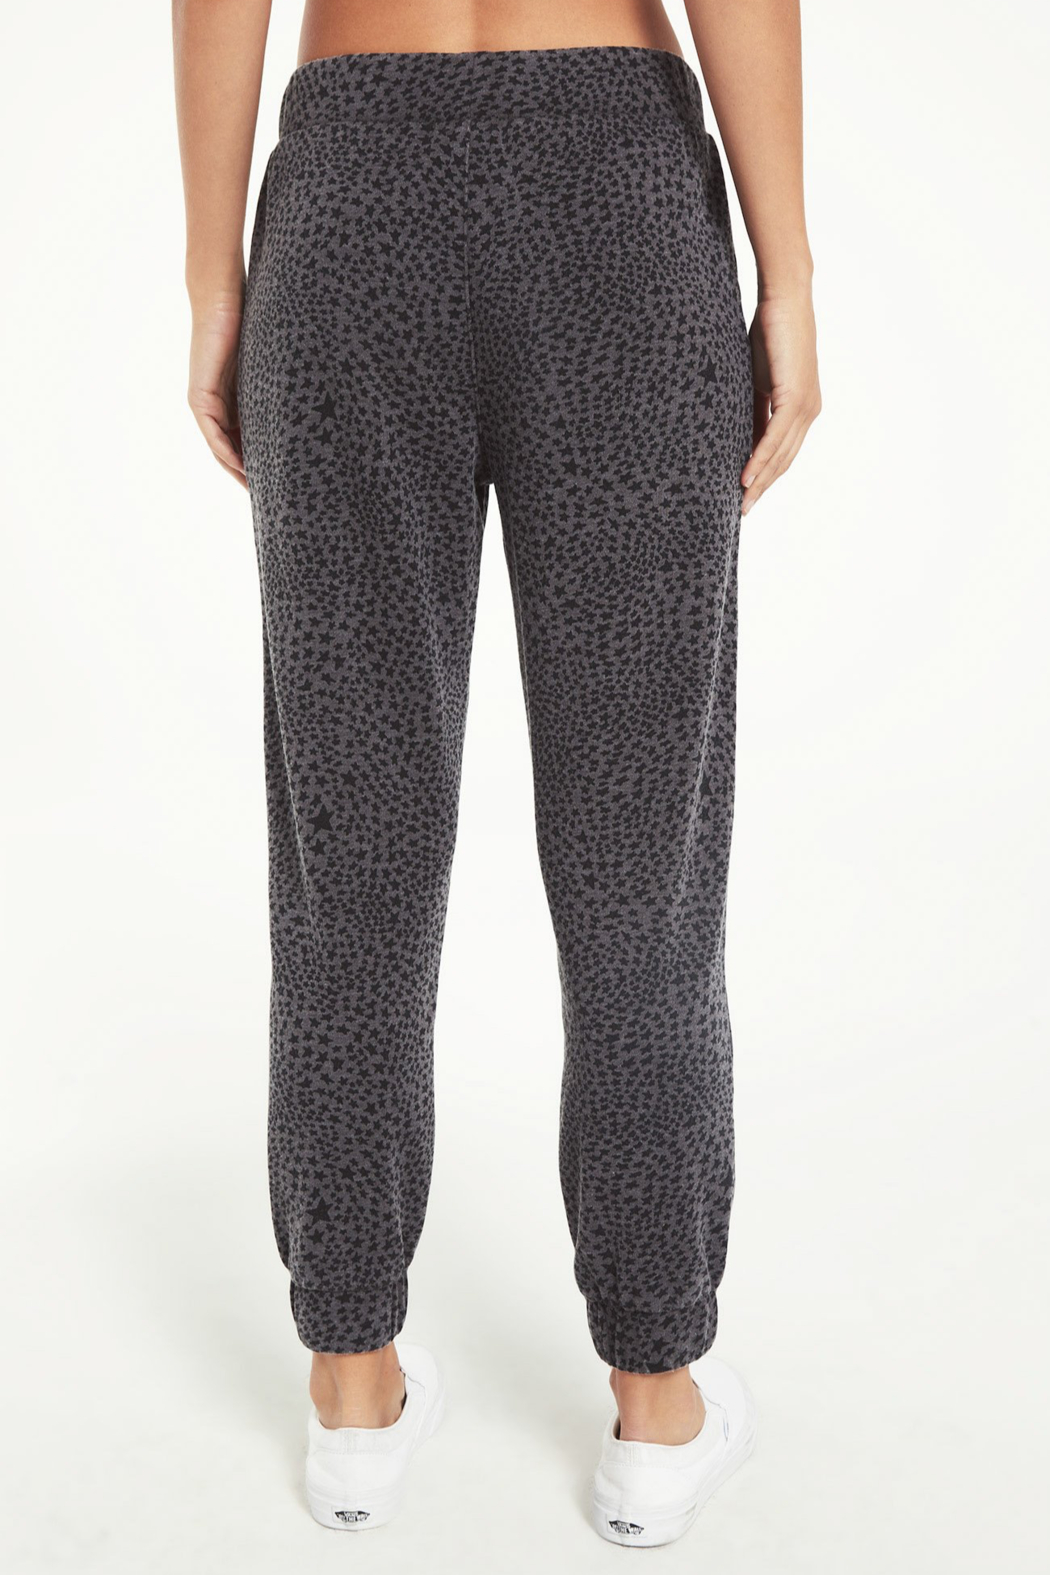 z supply Cadence Stardust Jogger - Side Cropped Image